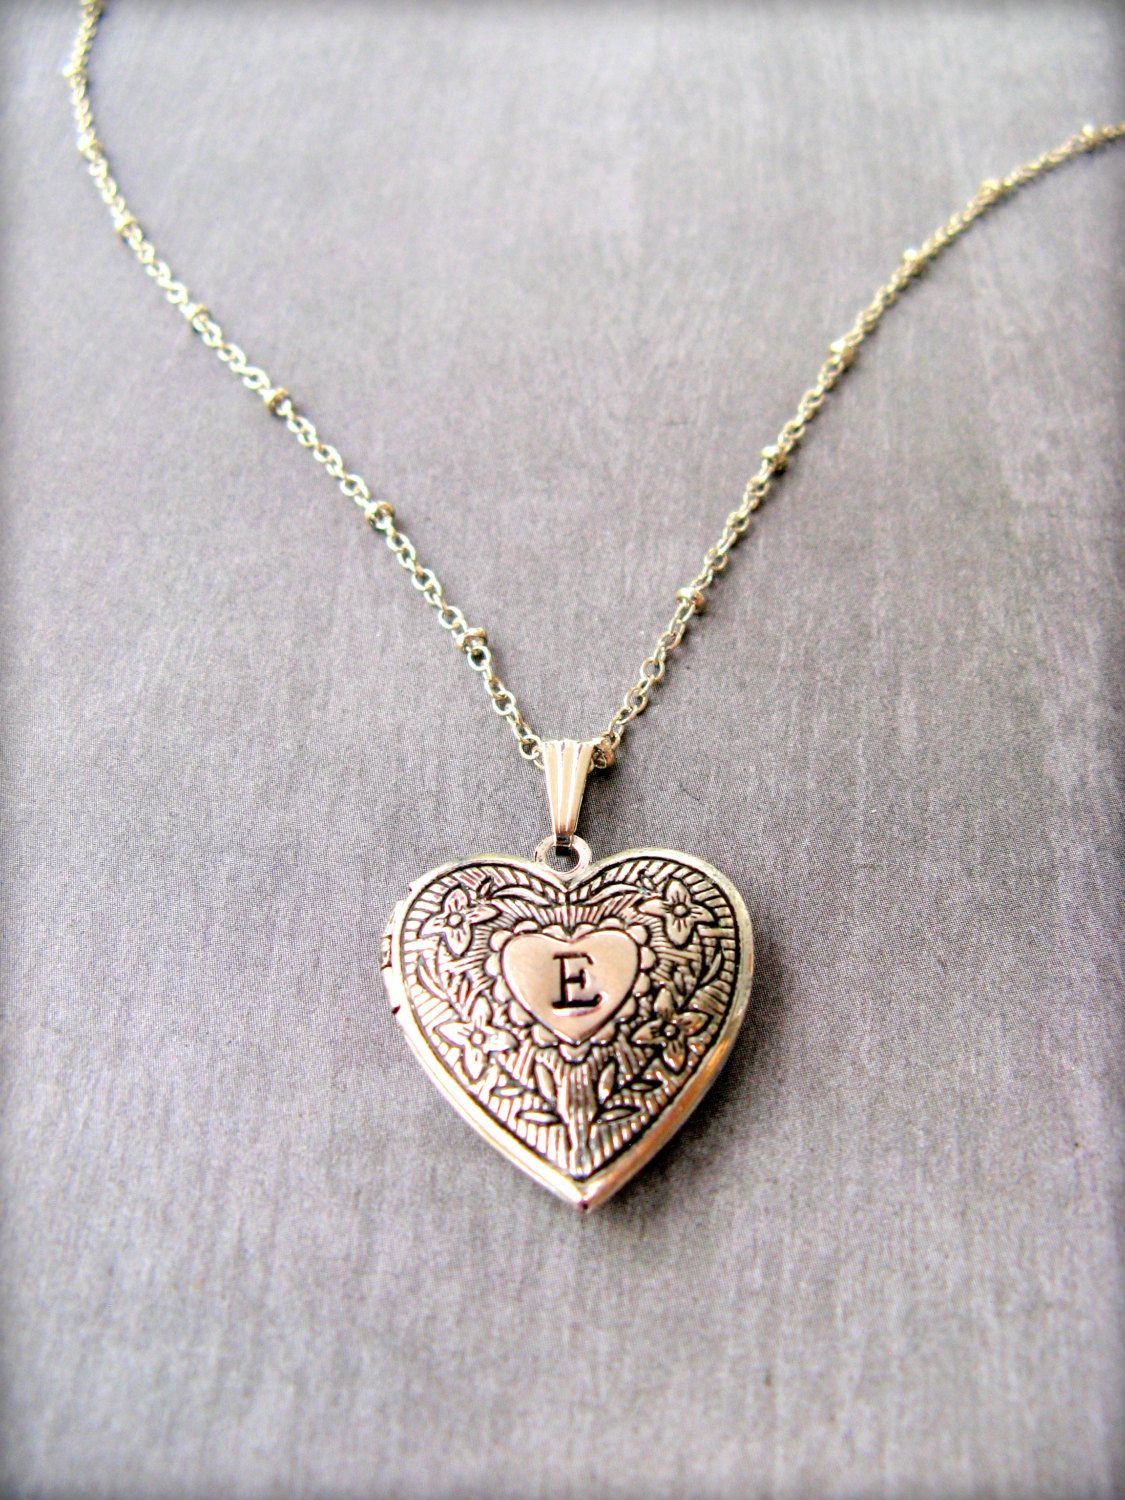 Personalized Heart Locket Necklace Silver Heart Locket Initial Locket Engraved Pendant Keepsake Pho Silver Locket Necklace Heart Locket Heart Locket Necklace